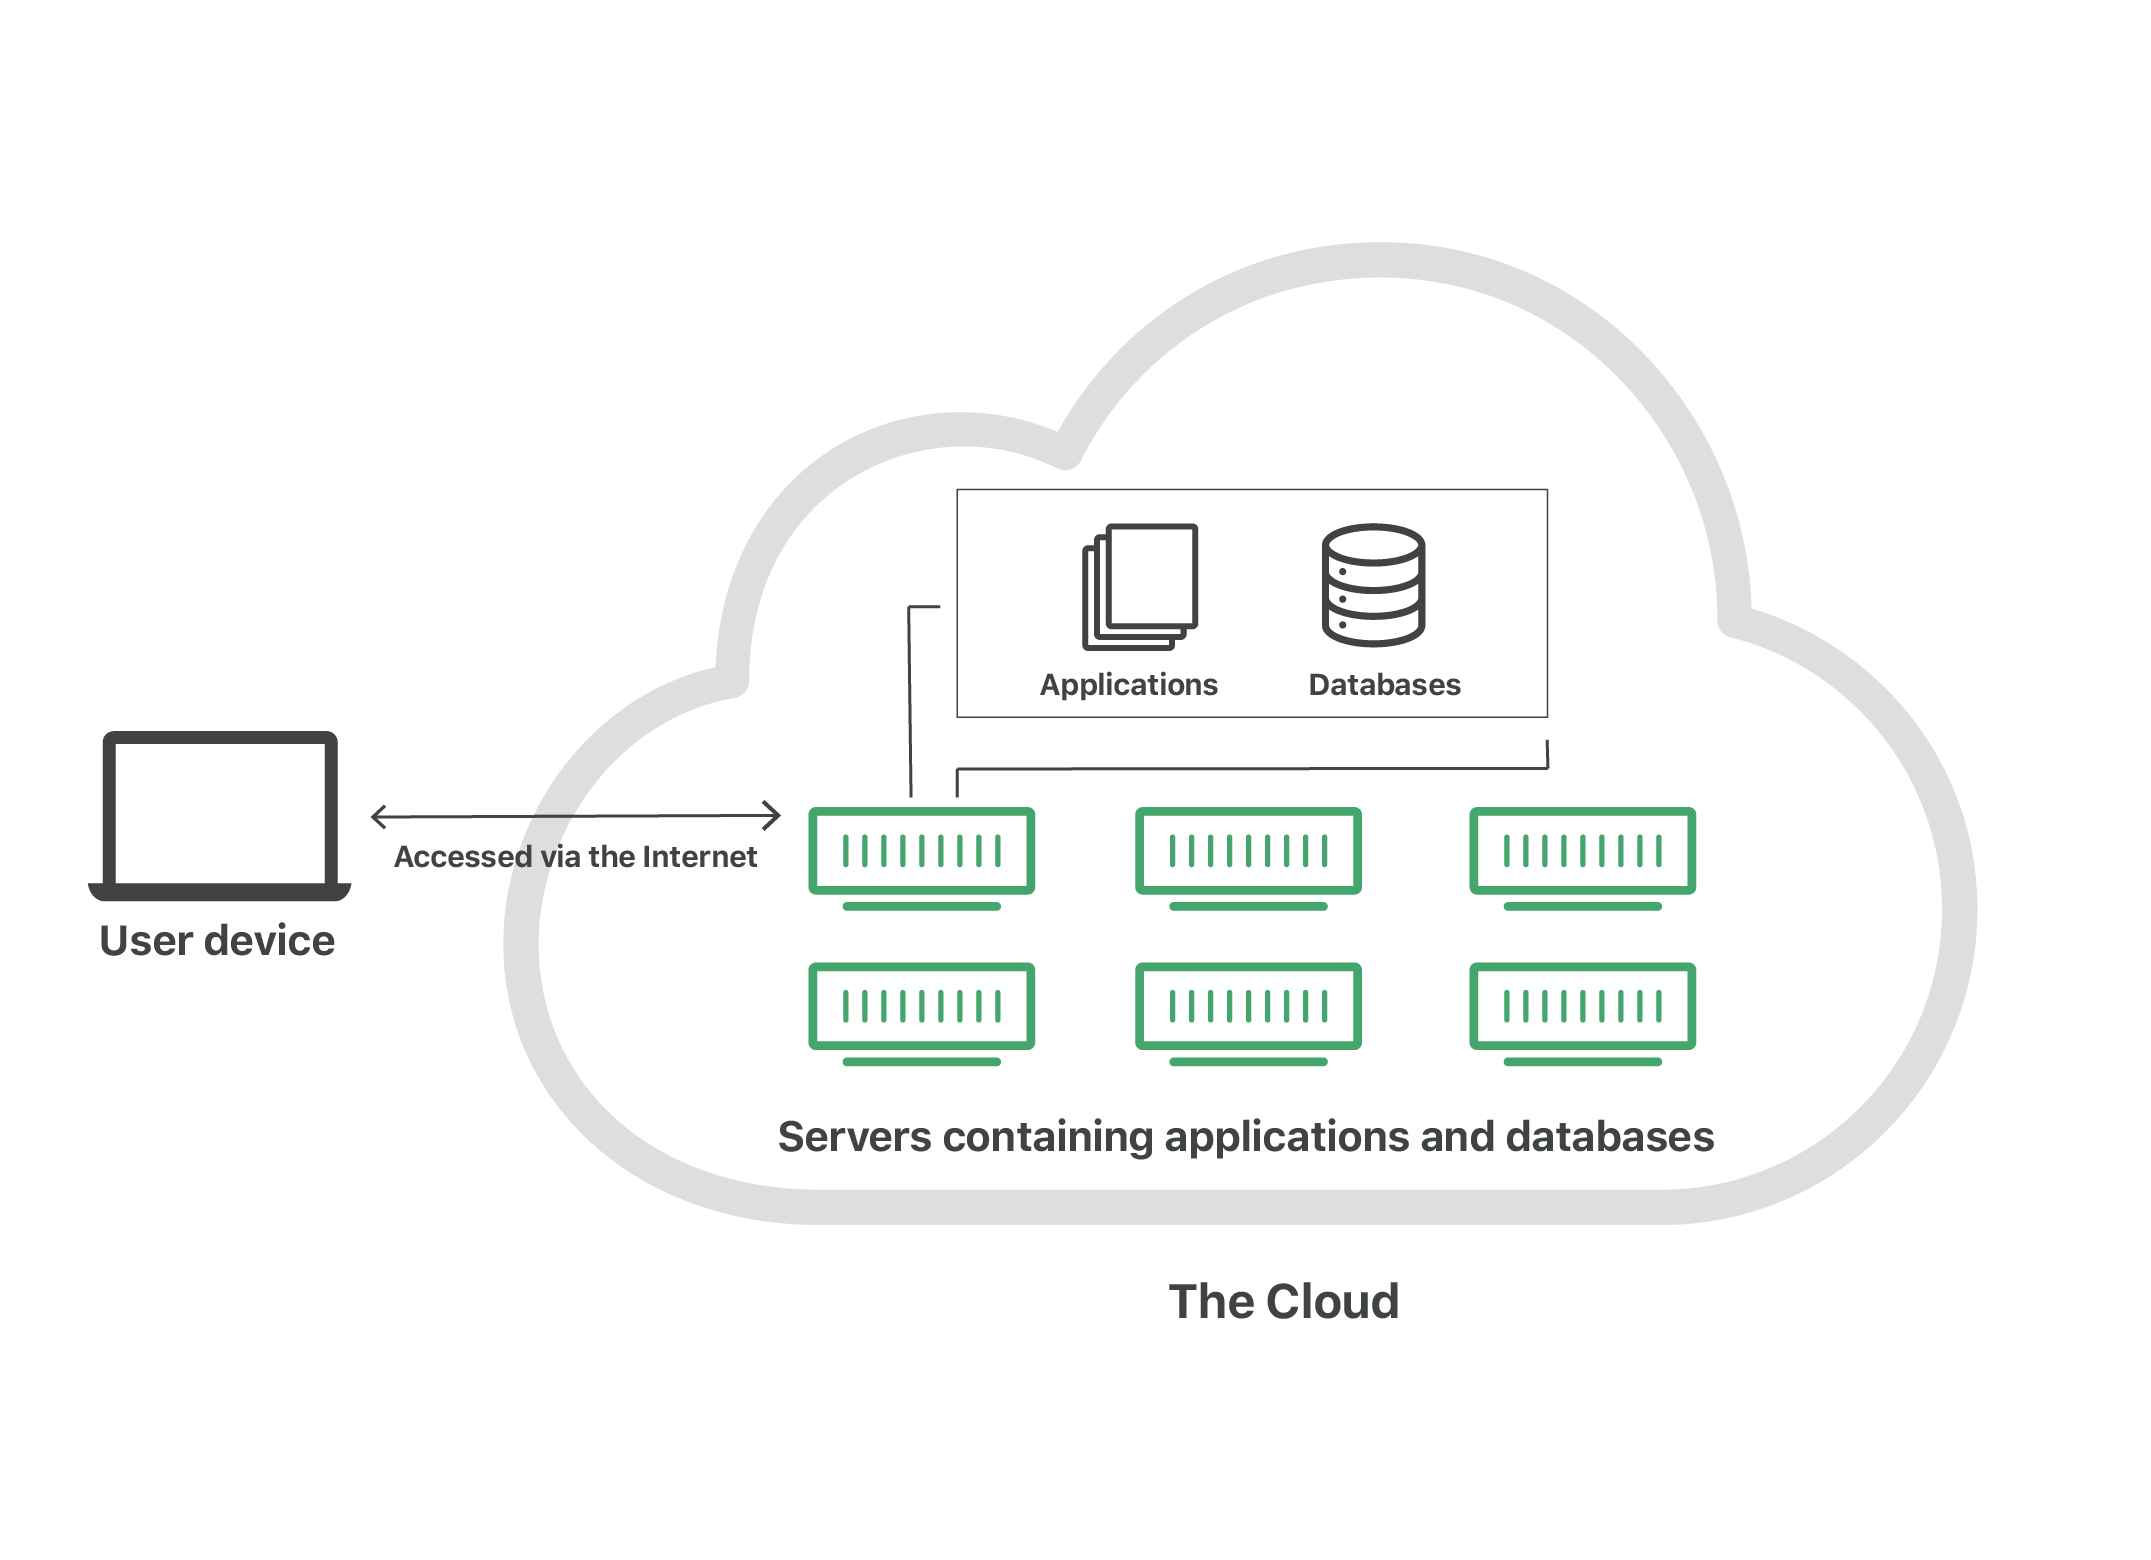 What is the Cloud Diagram